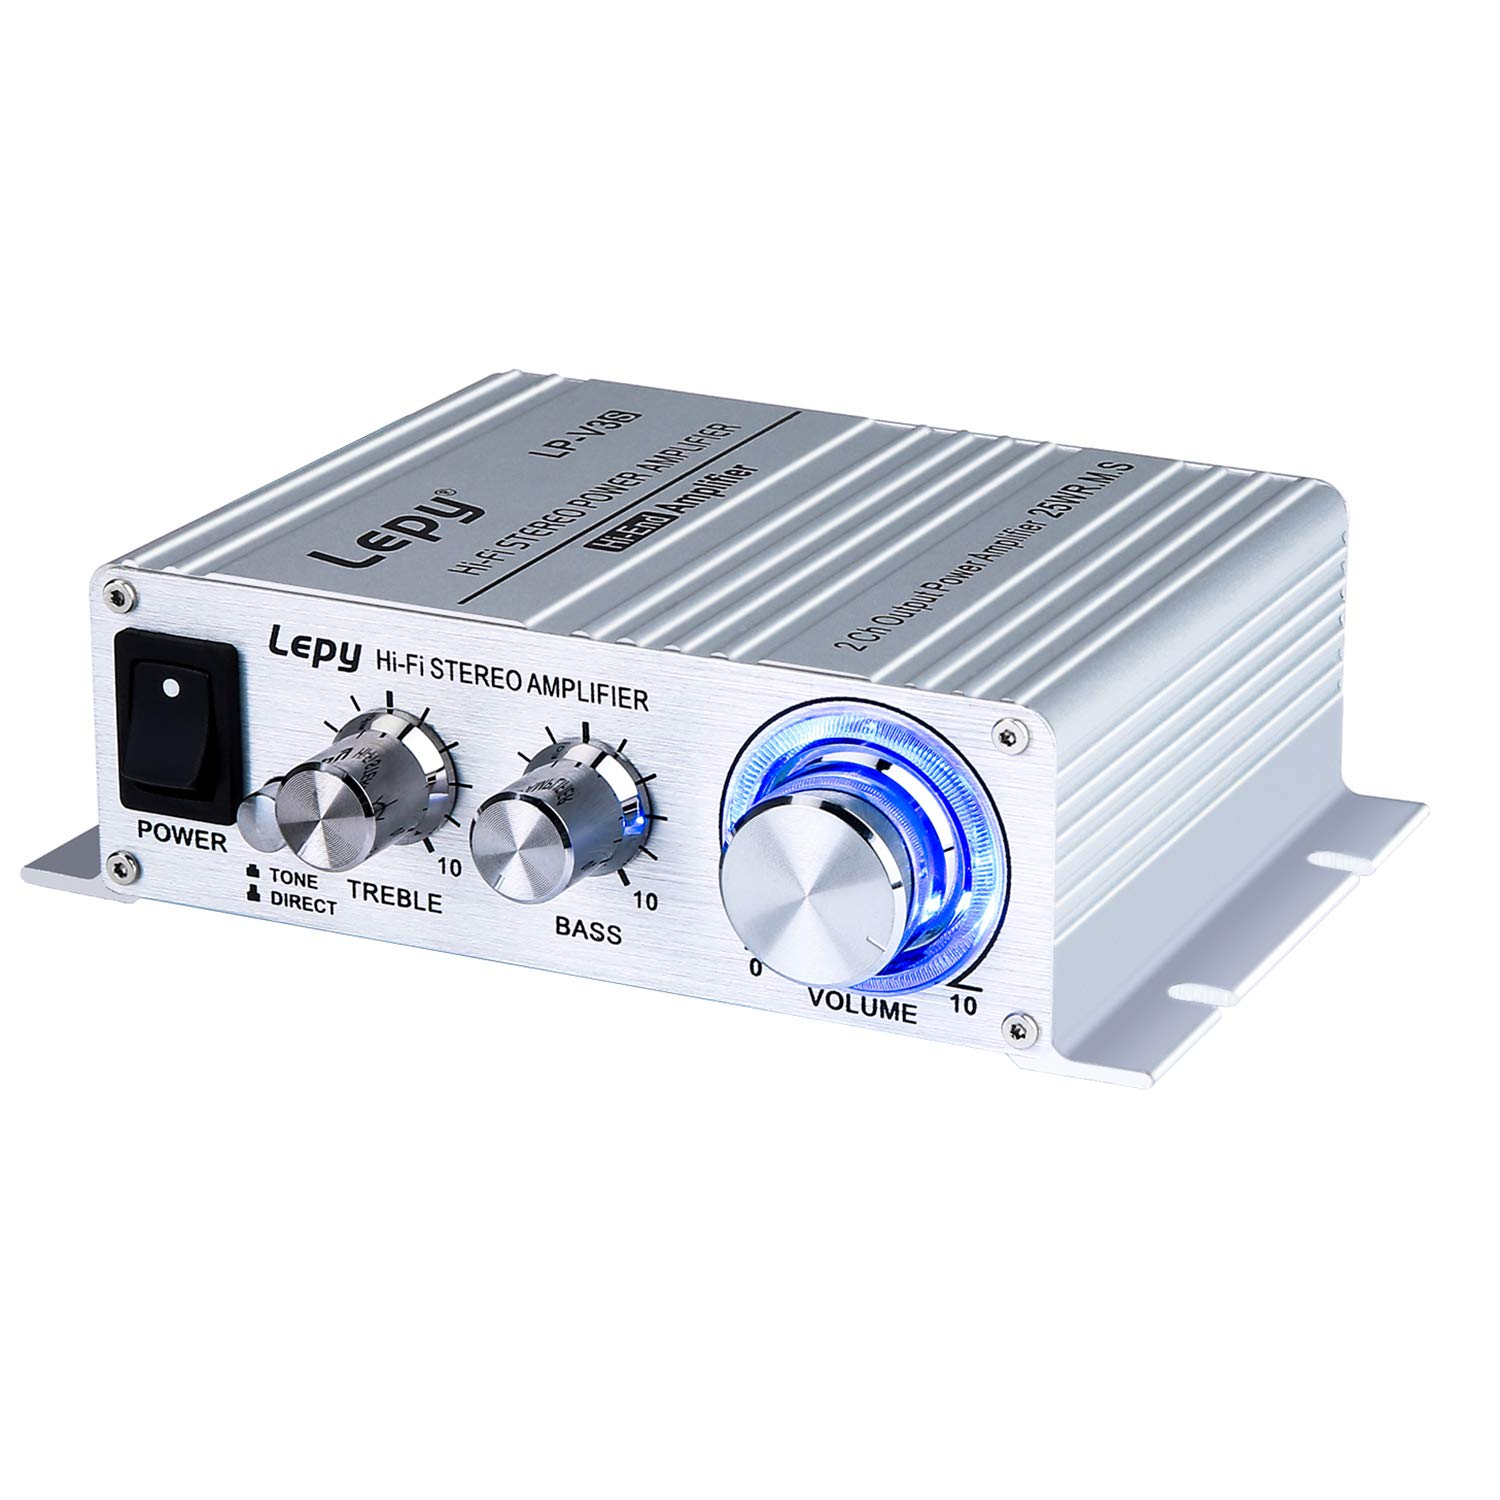 fishermo mini amplifier, home audio stereo bass music streaming digital class d hi fi power amp for bookshelf speaker pc tv cell phone car vehicle simple amplifier diagram audio amplifiers